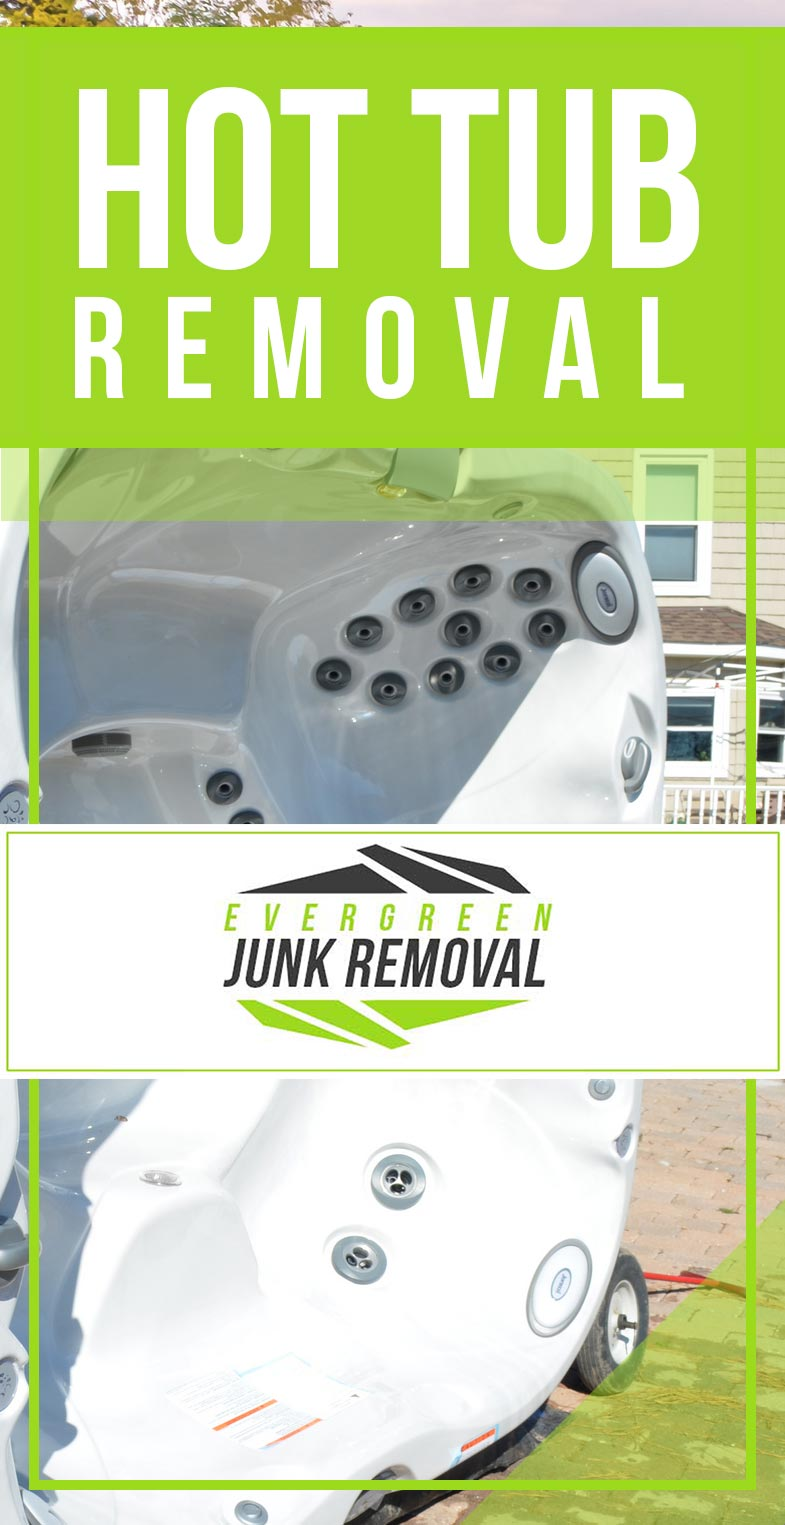 Silverdale Hot Tub Removal